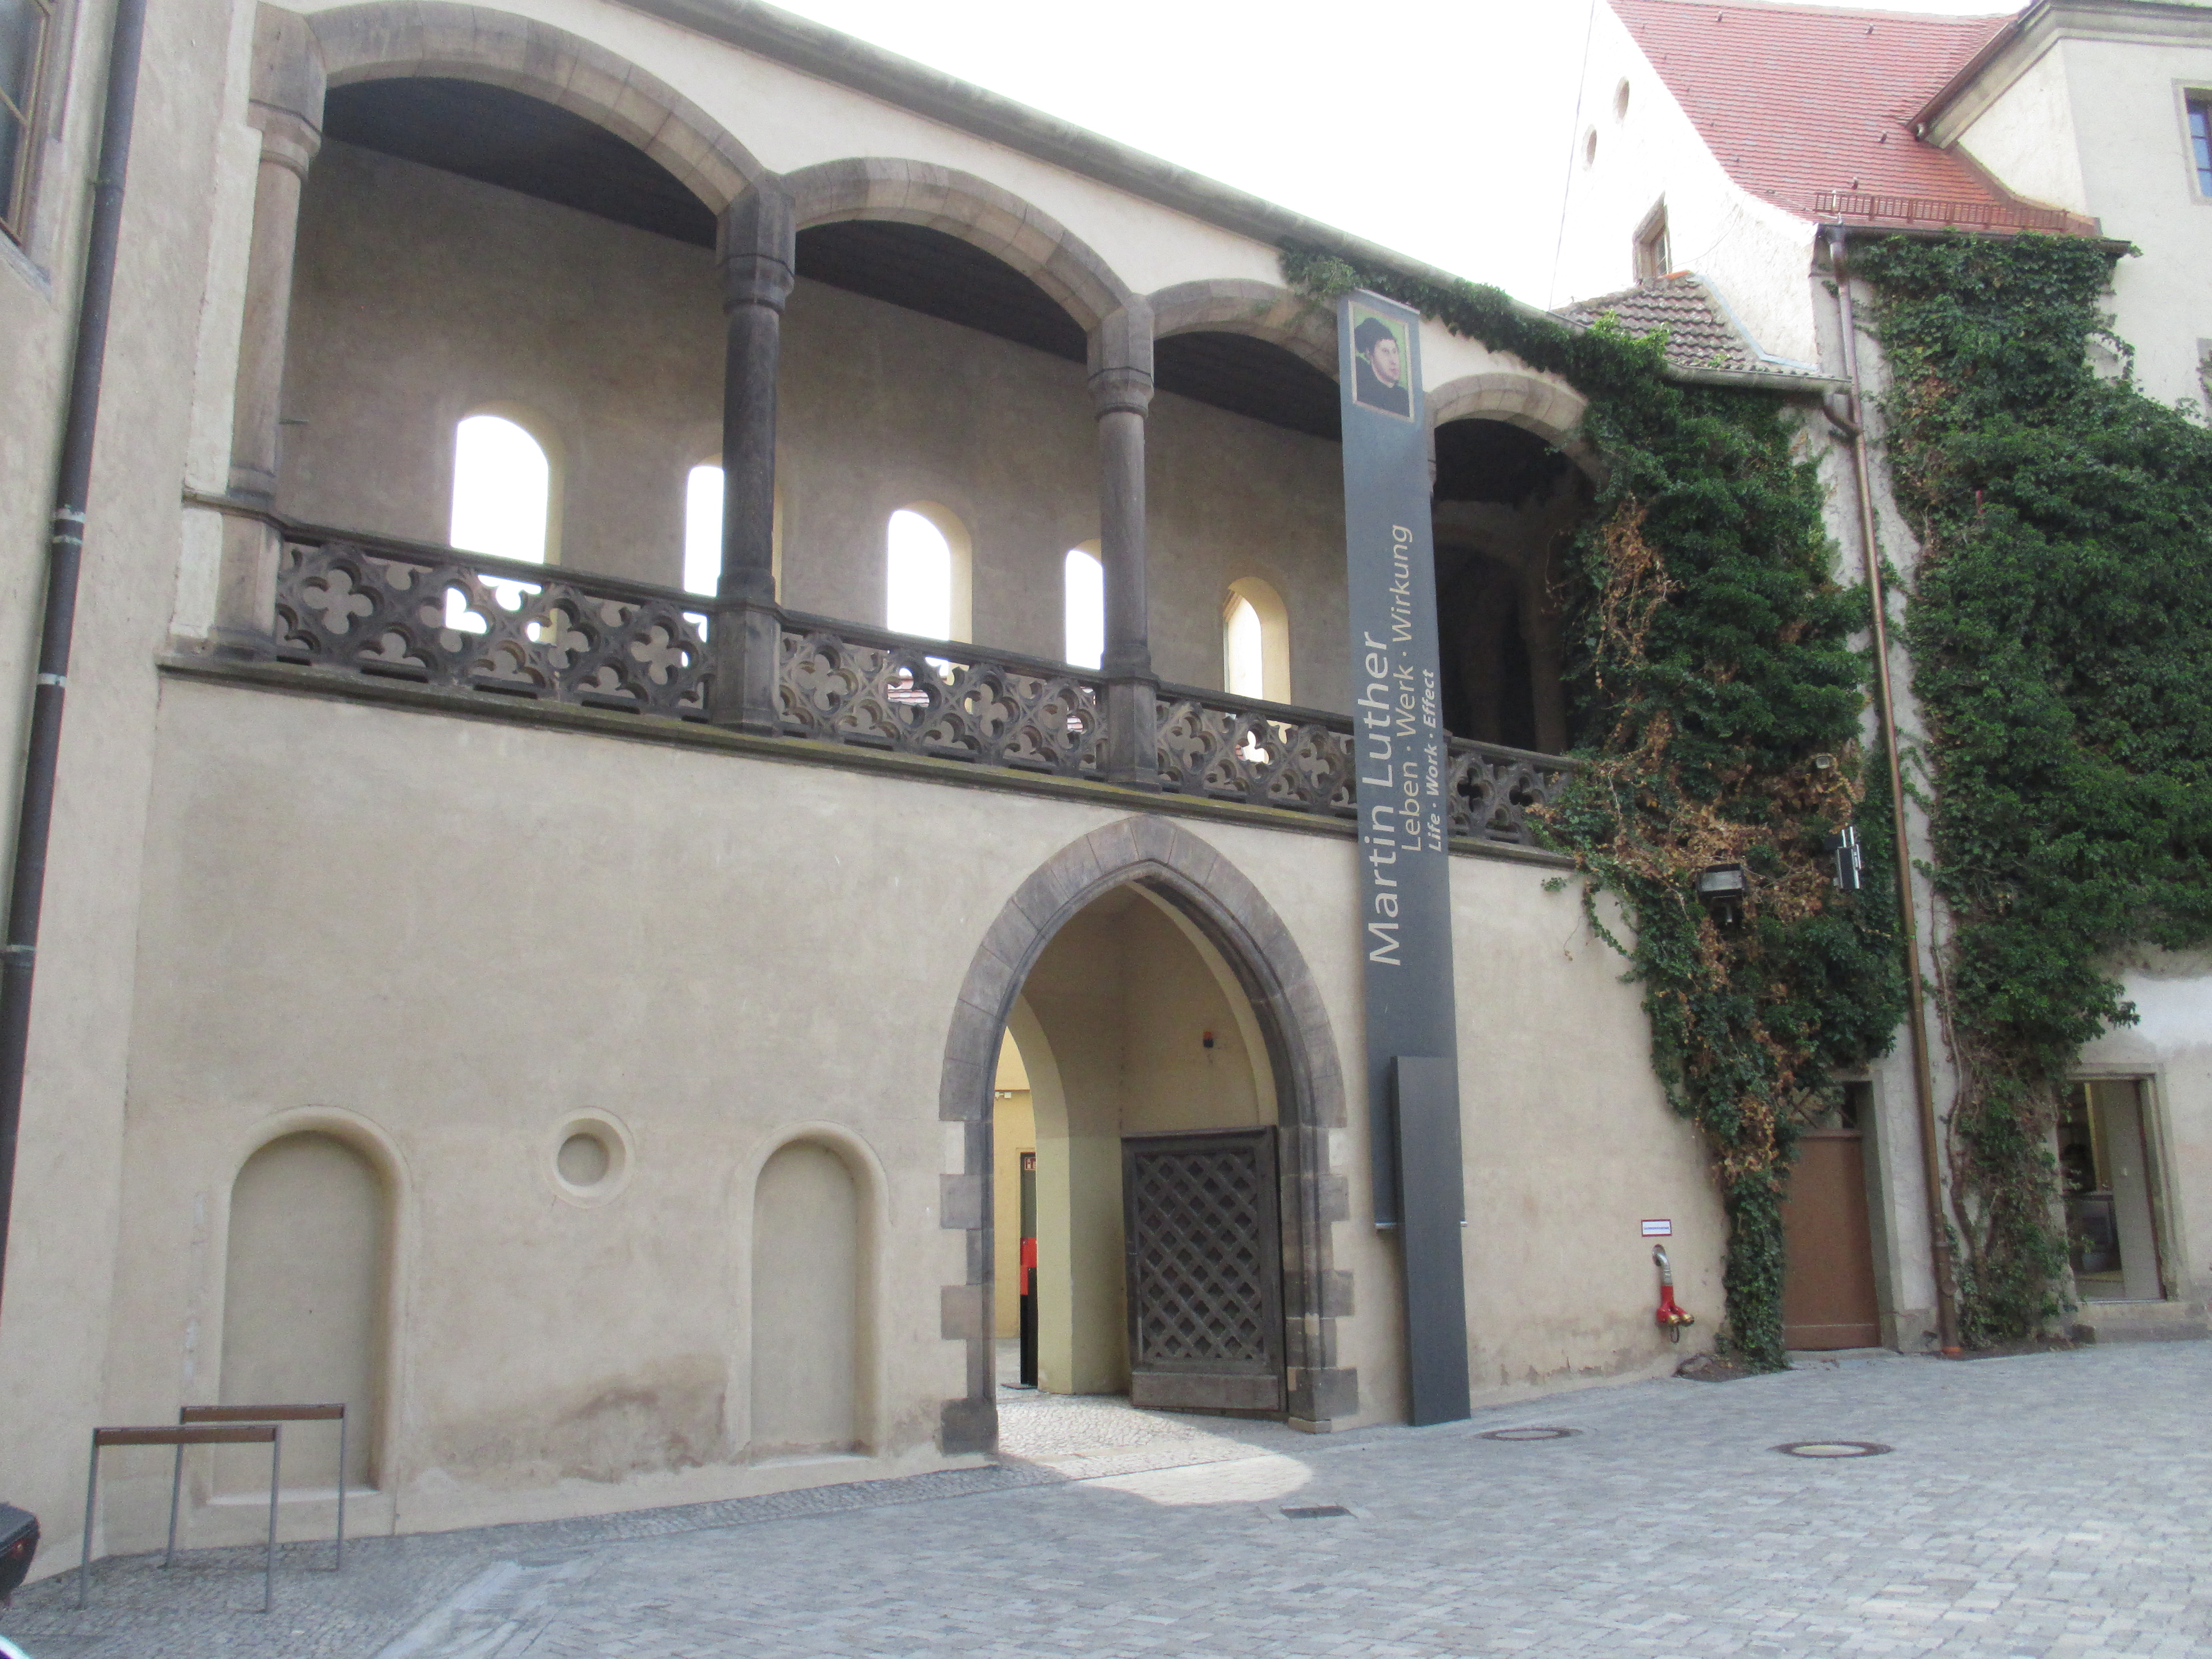 The Lutherhaus - exhibition entrance